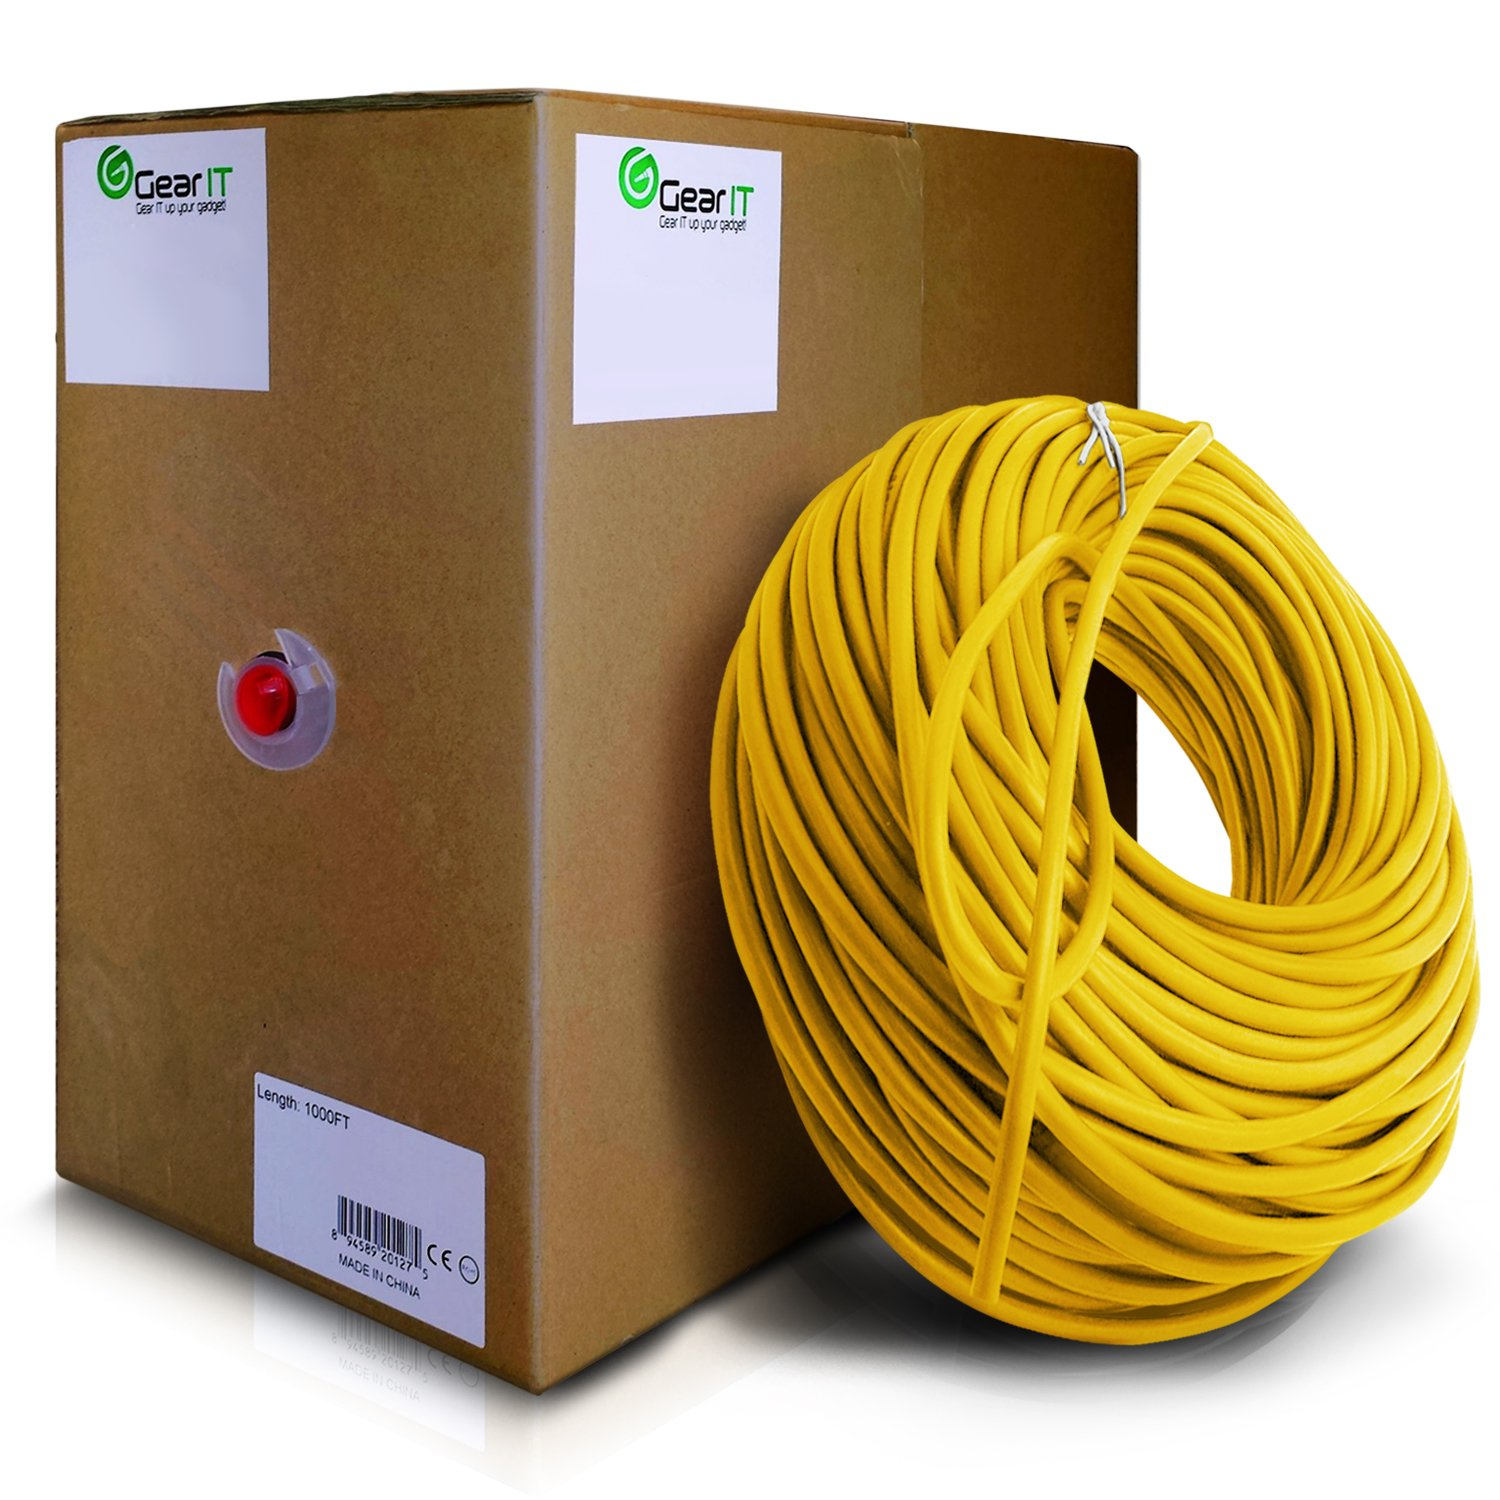 GearIT 1000 Feet Bulk Cat6 Ethernet Cable - Cat 6e 550Mhz 24AWG Full Copper Wire UTP Pull Box, Yellow by GearIT